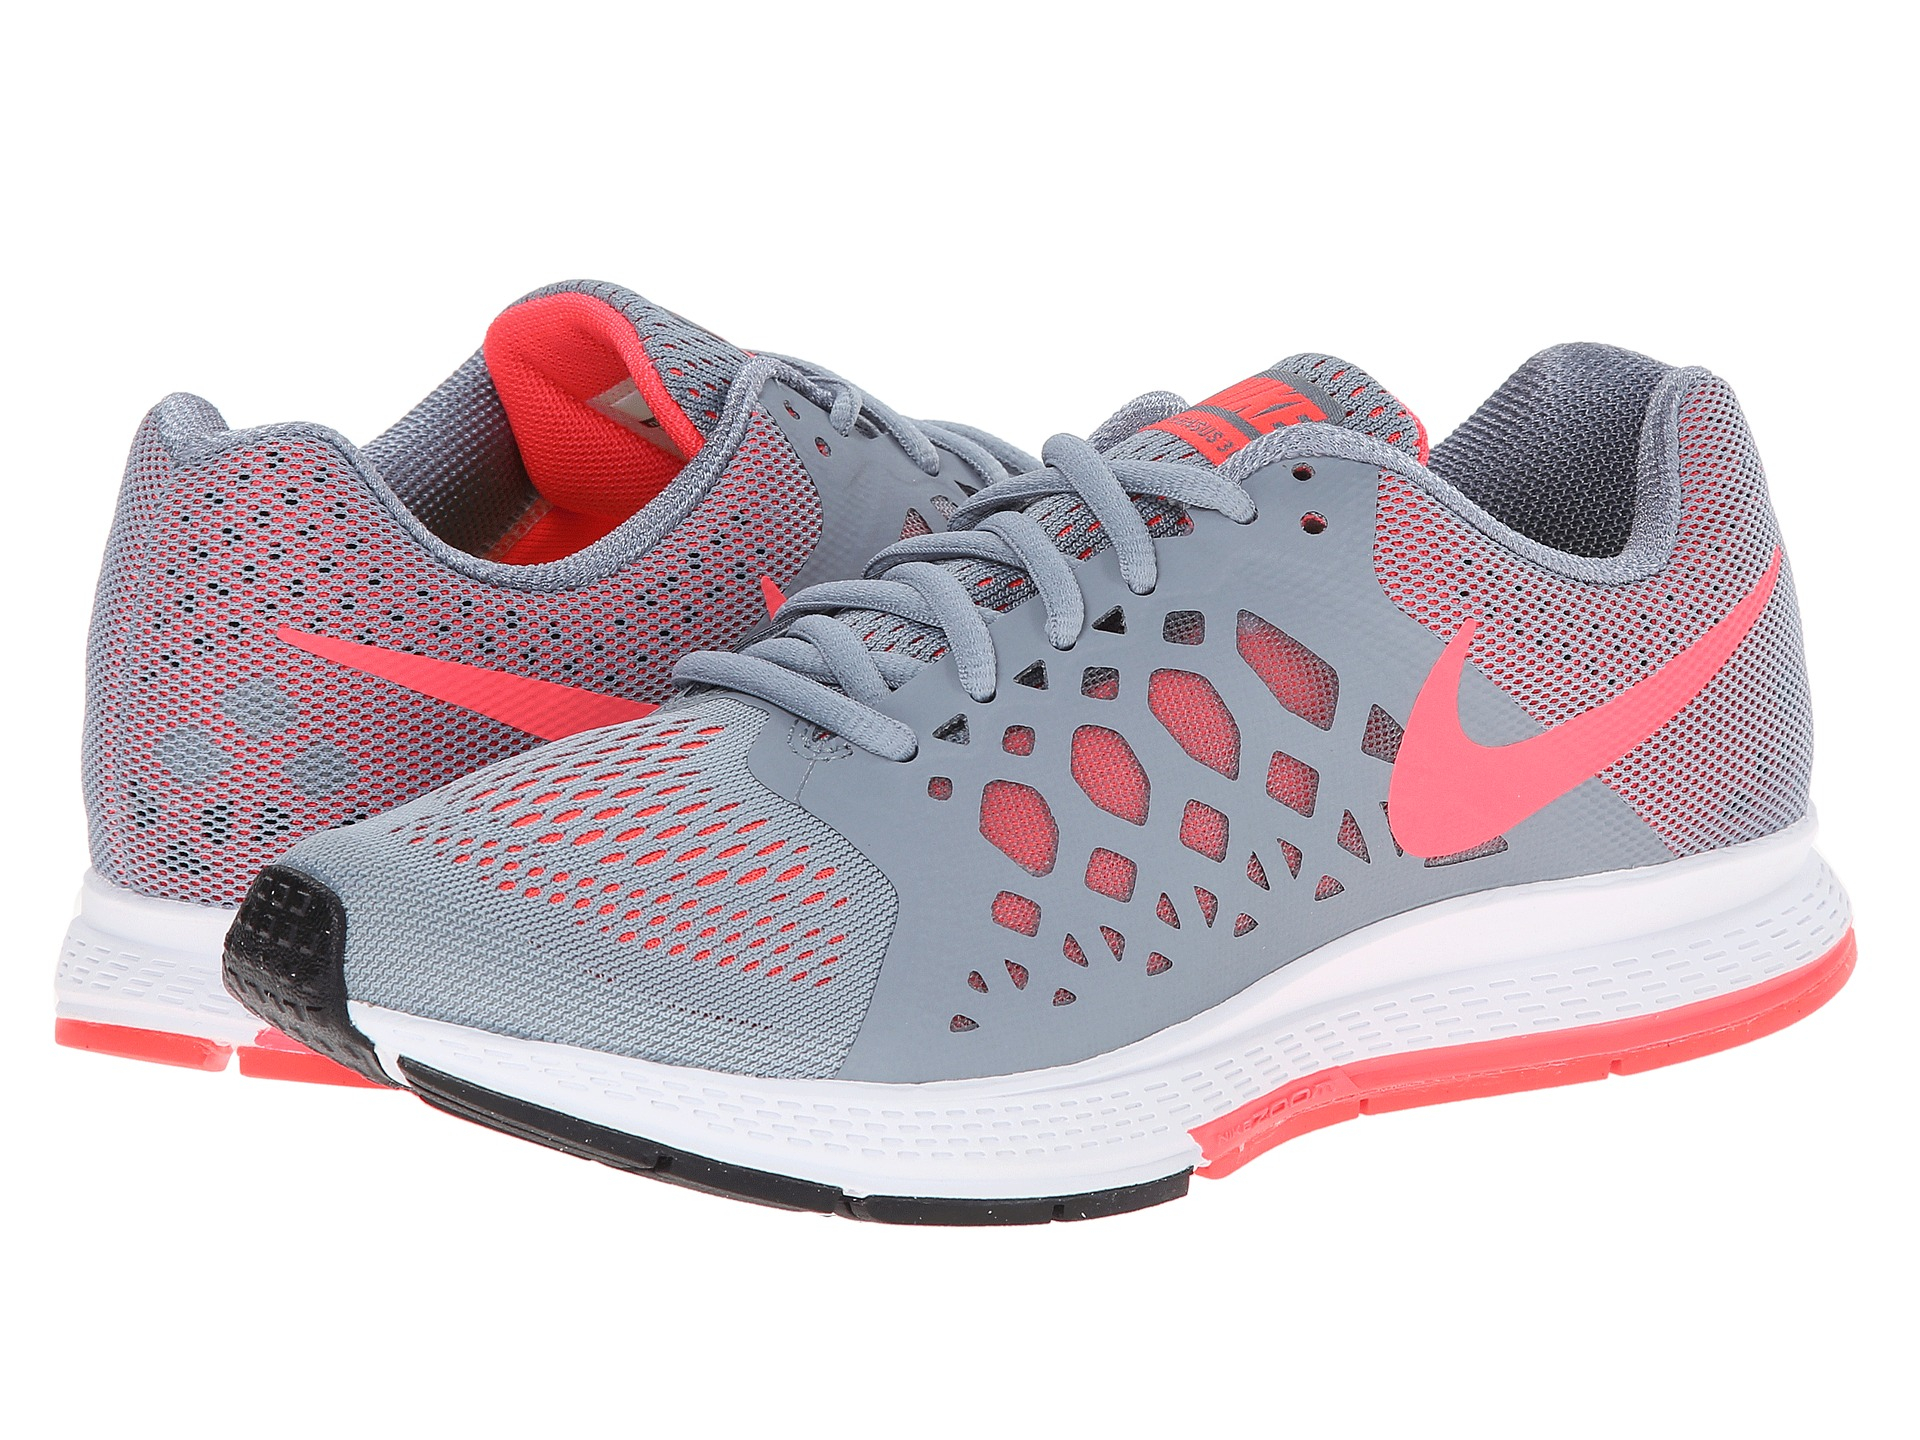 23066c3cbce8 ... Lyst - Nike Zoom Pegasus 31 in Gray ...